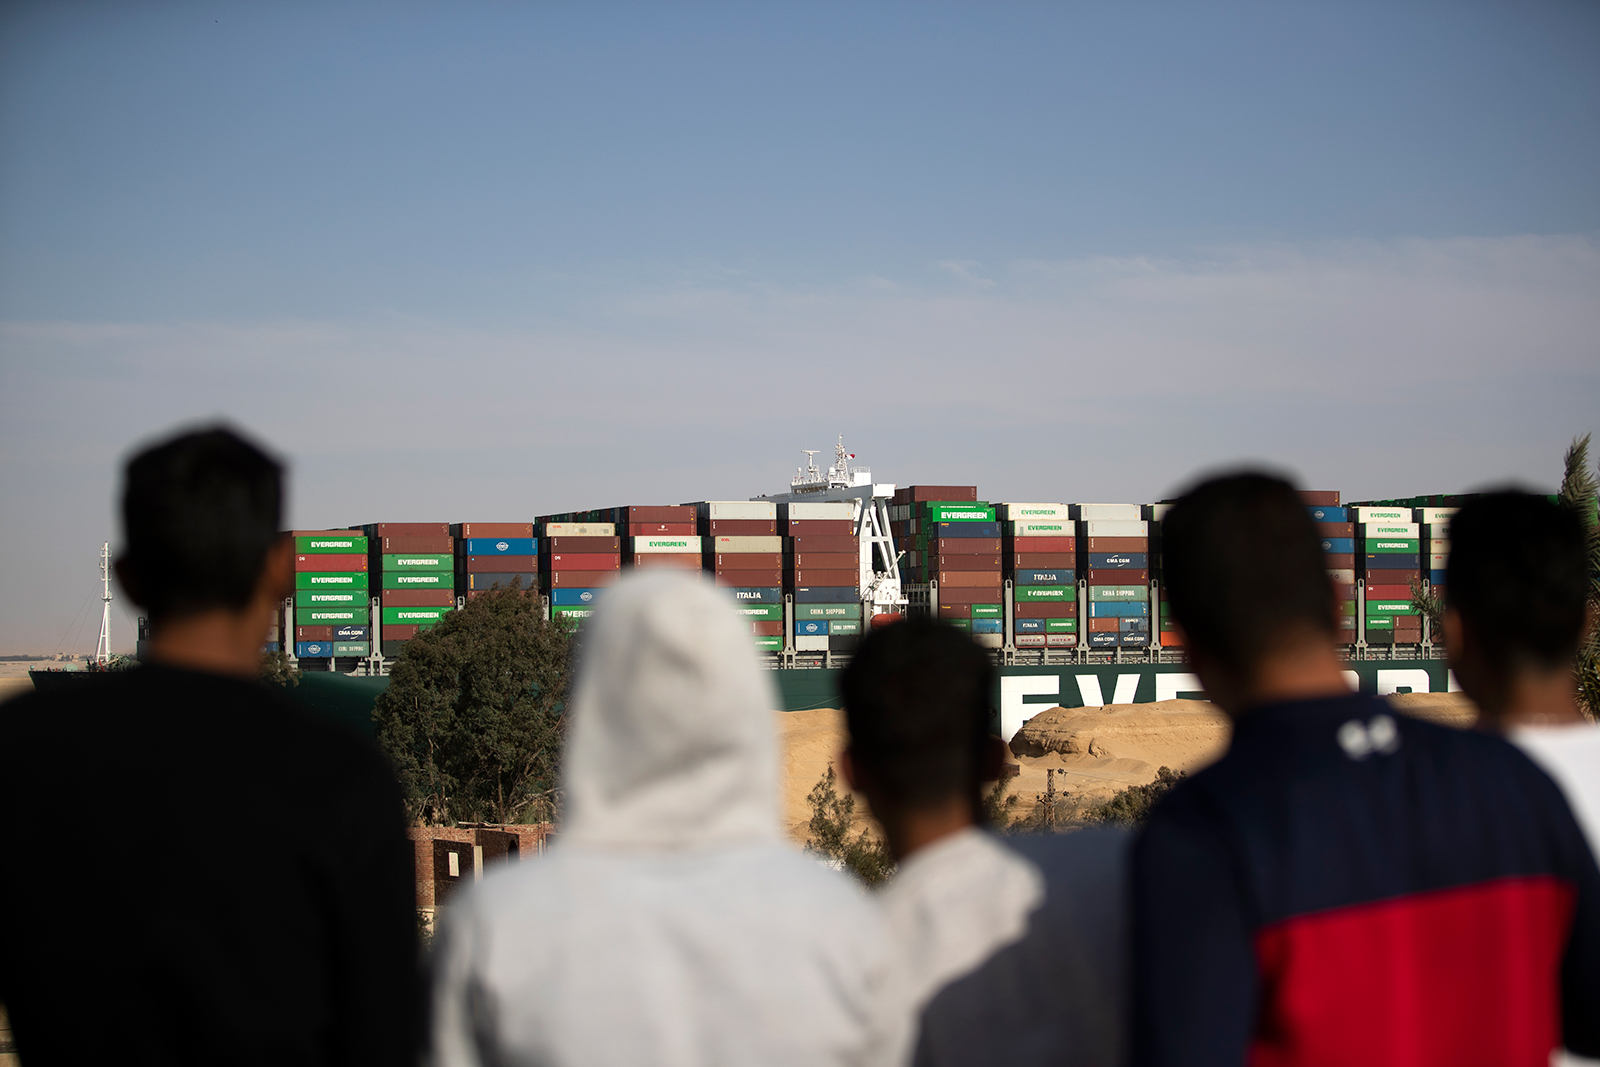 People watch as the container ship 'Ever Given' is refloated, unblocking the Suez Canal in Egypt, on March 29.